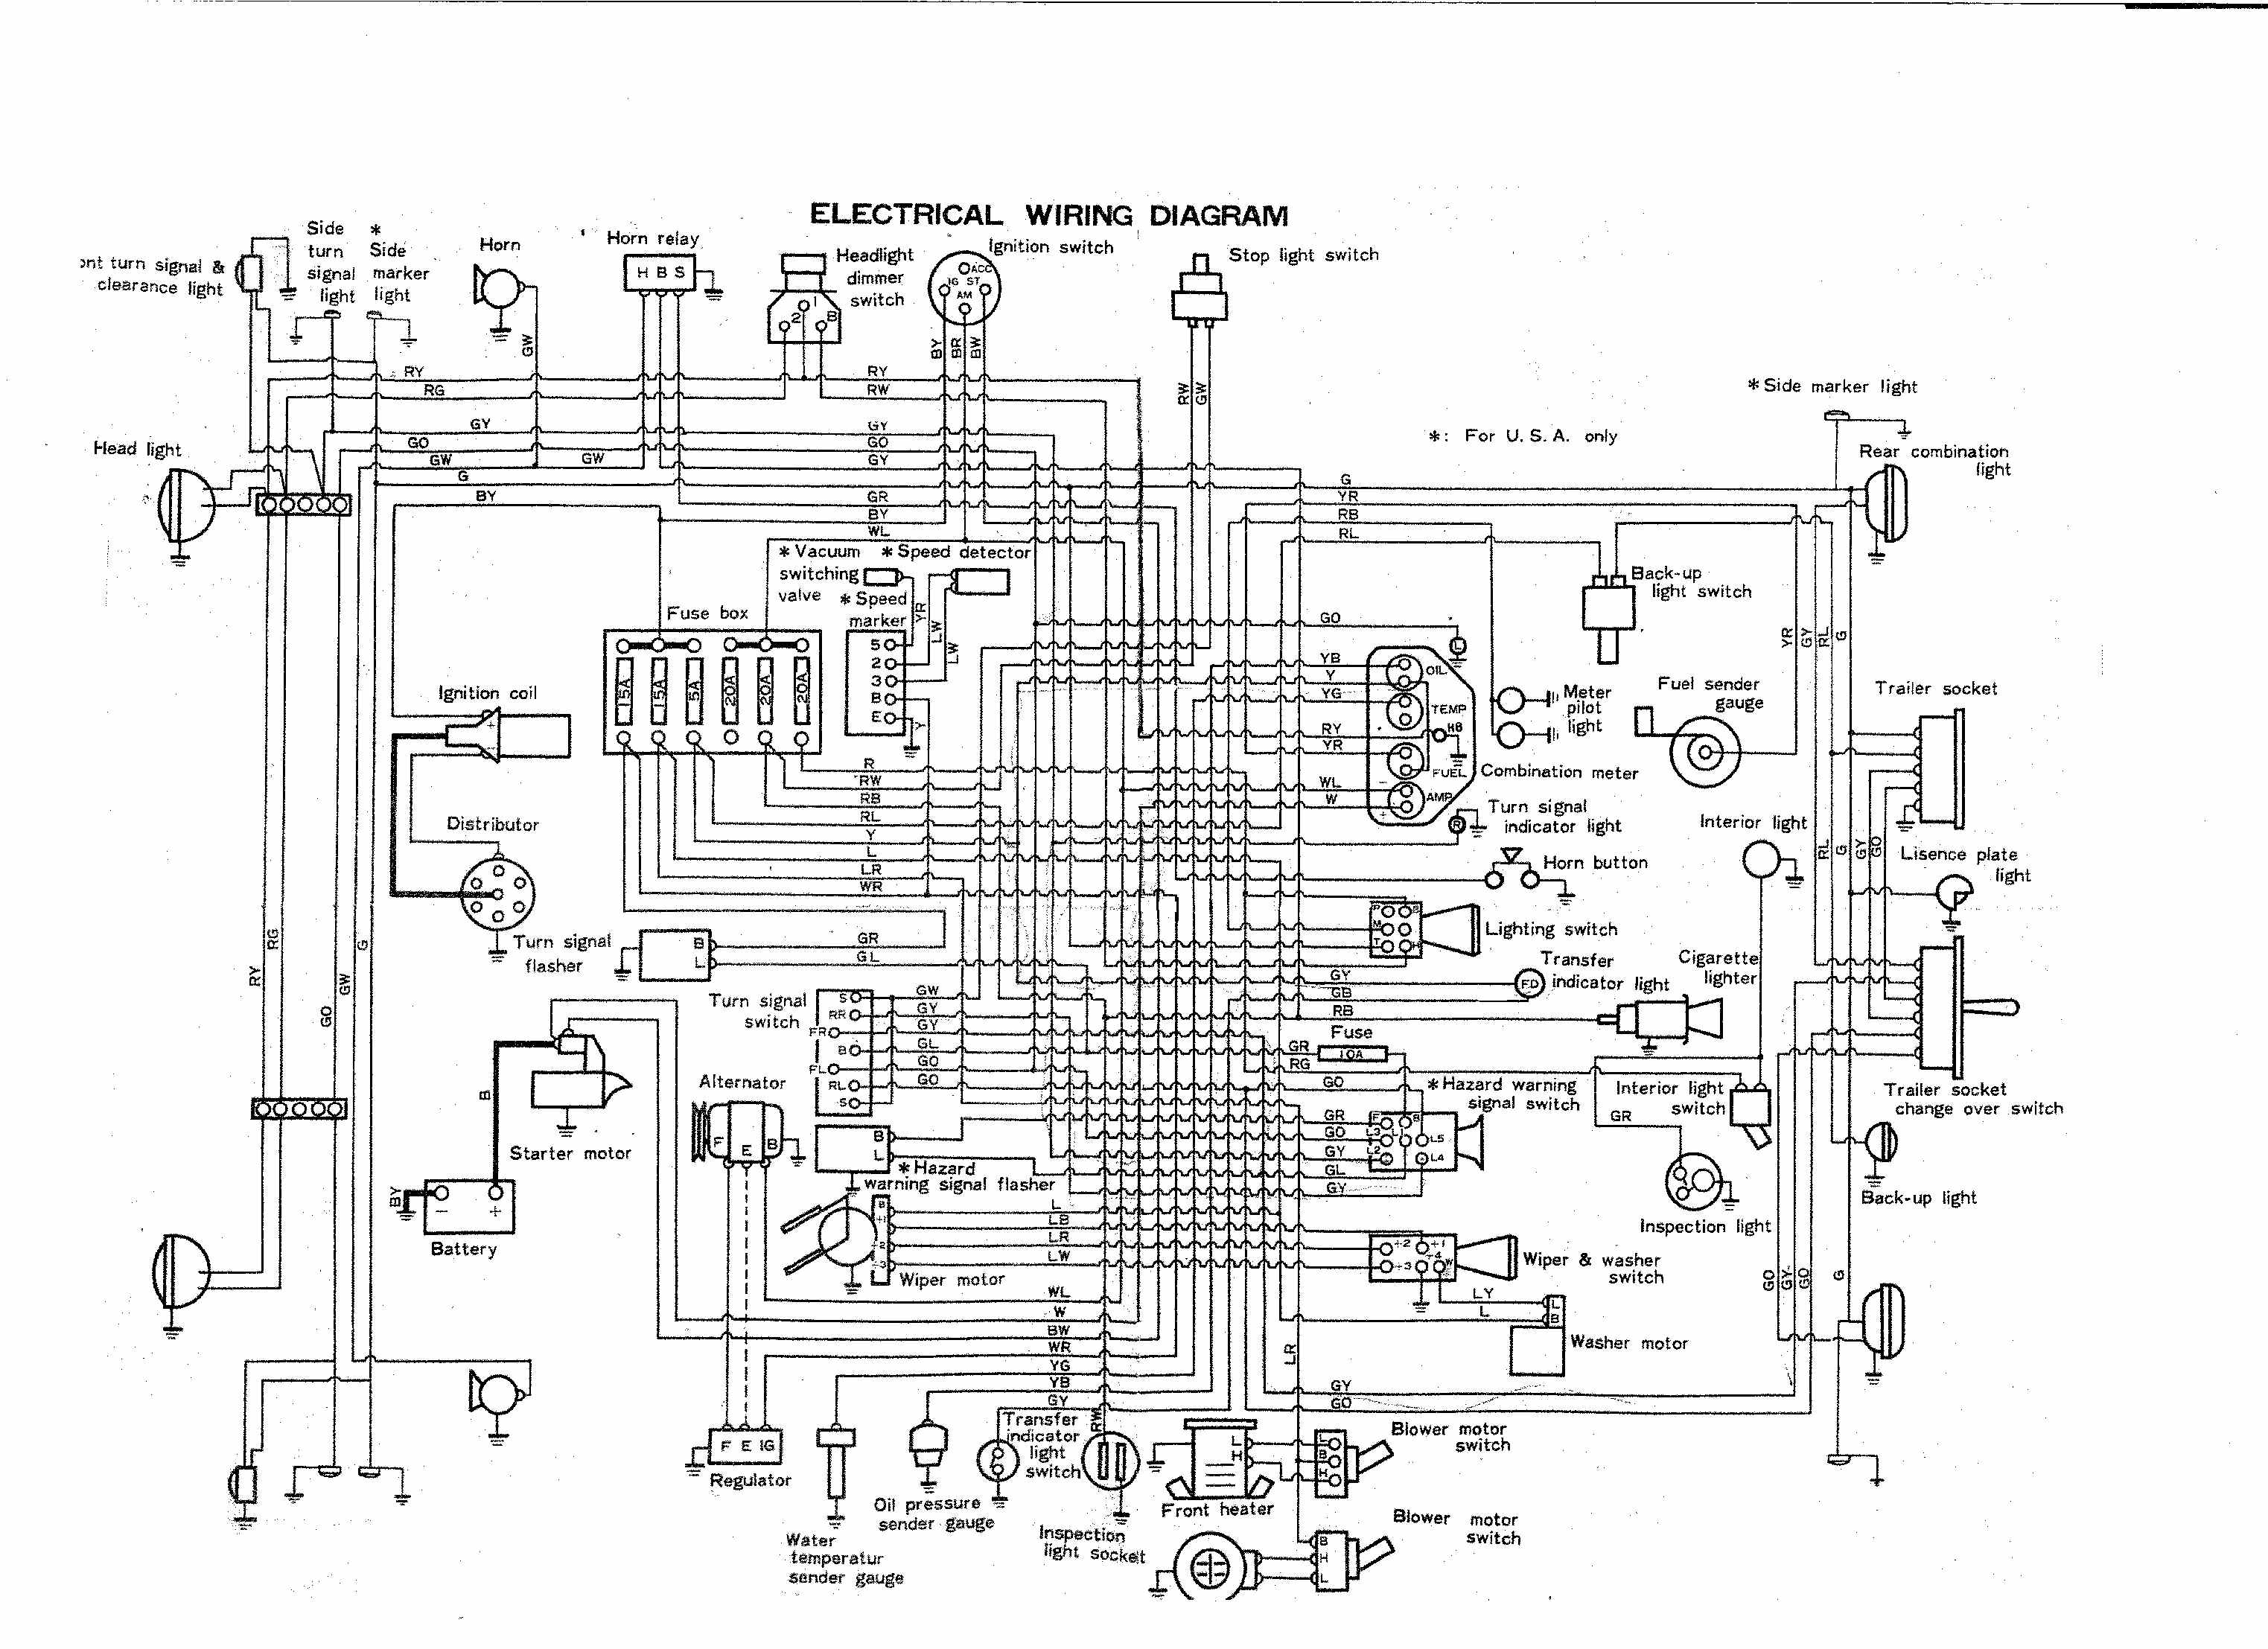 1971 Fj40 Wiring Diagram